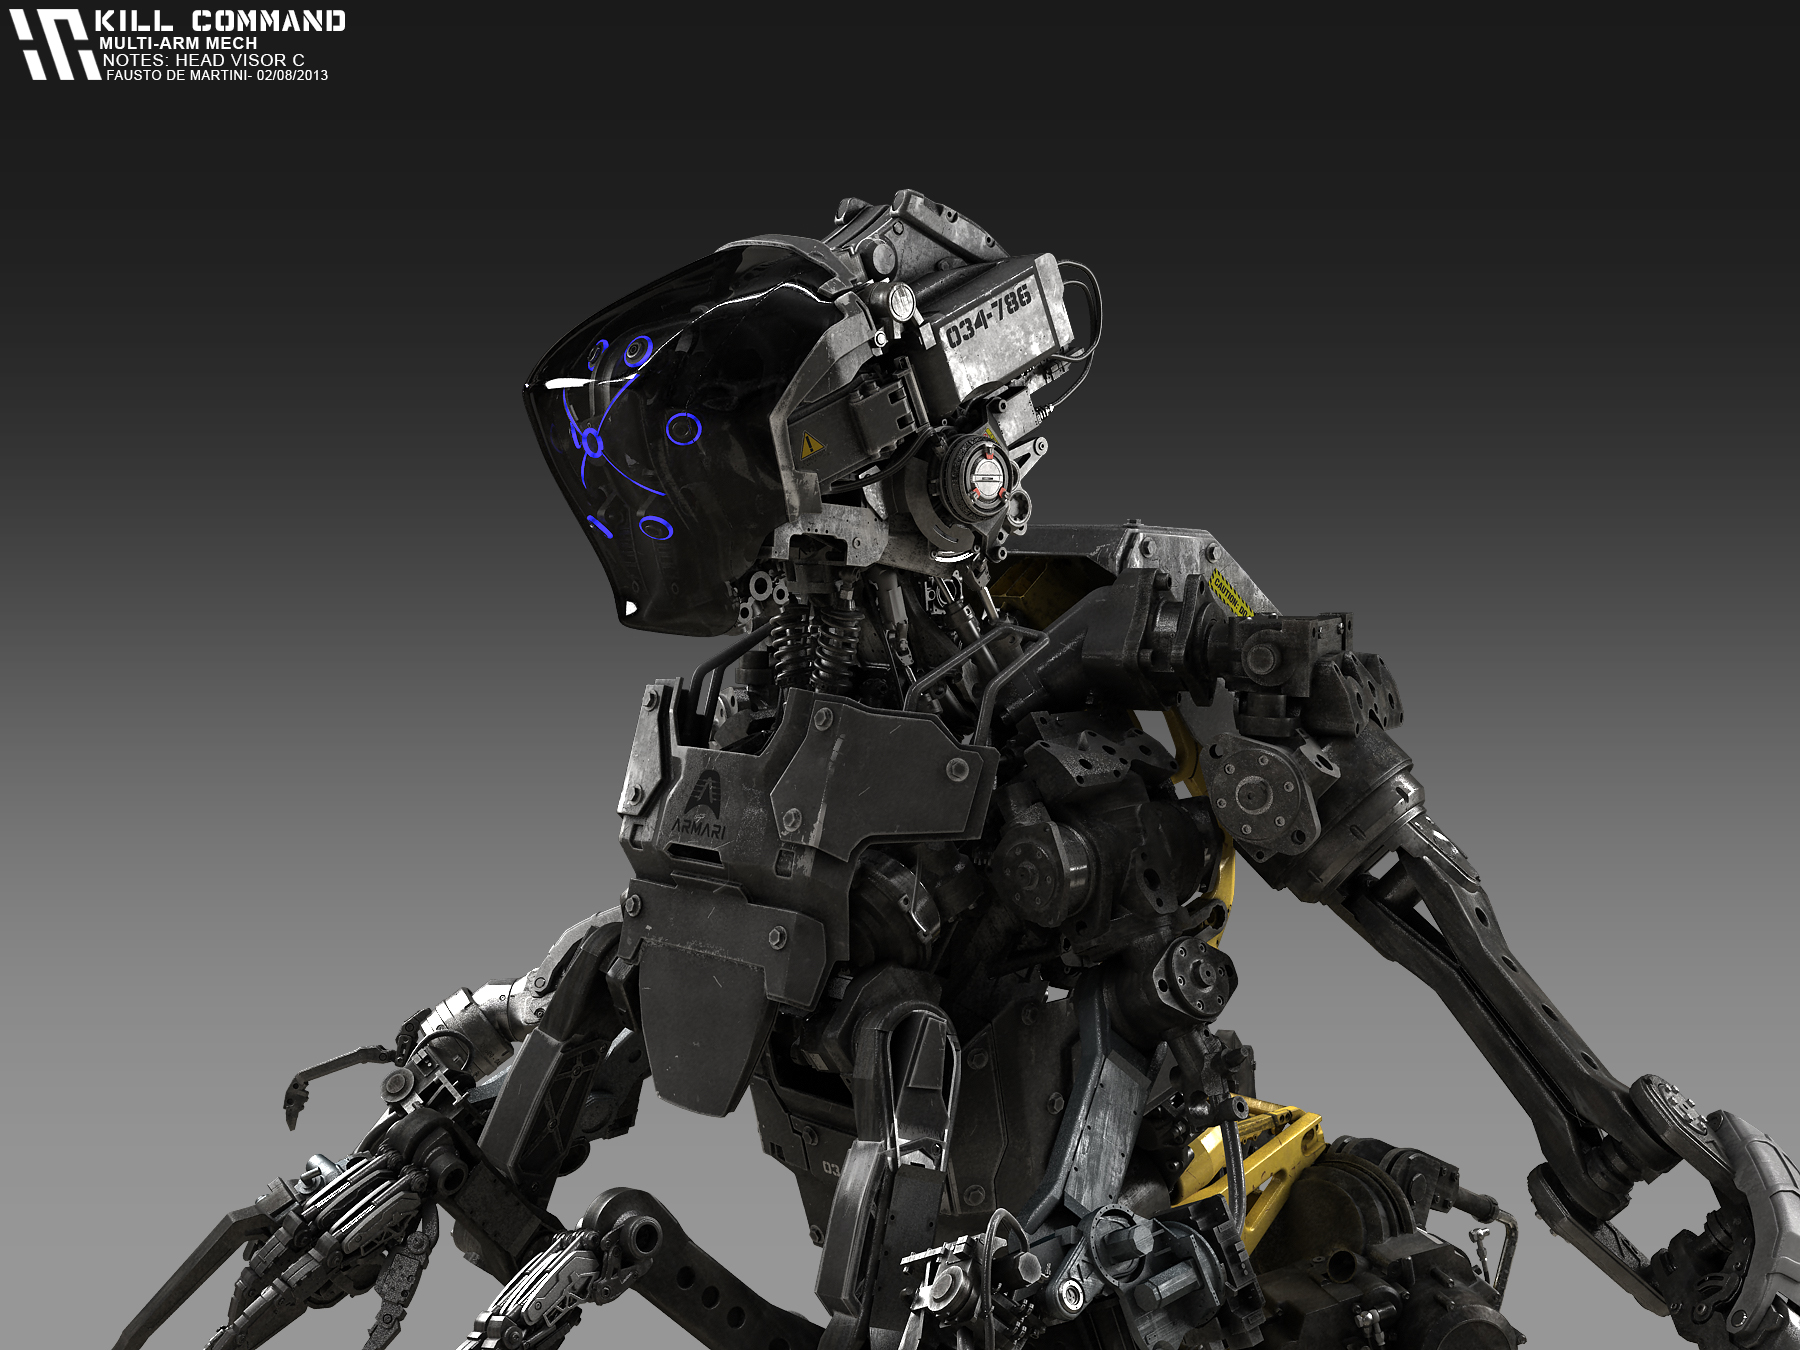 KILLCOMMAND_MultiArms_080213_HeadVisorC_03_FDM.jpg